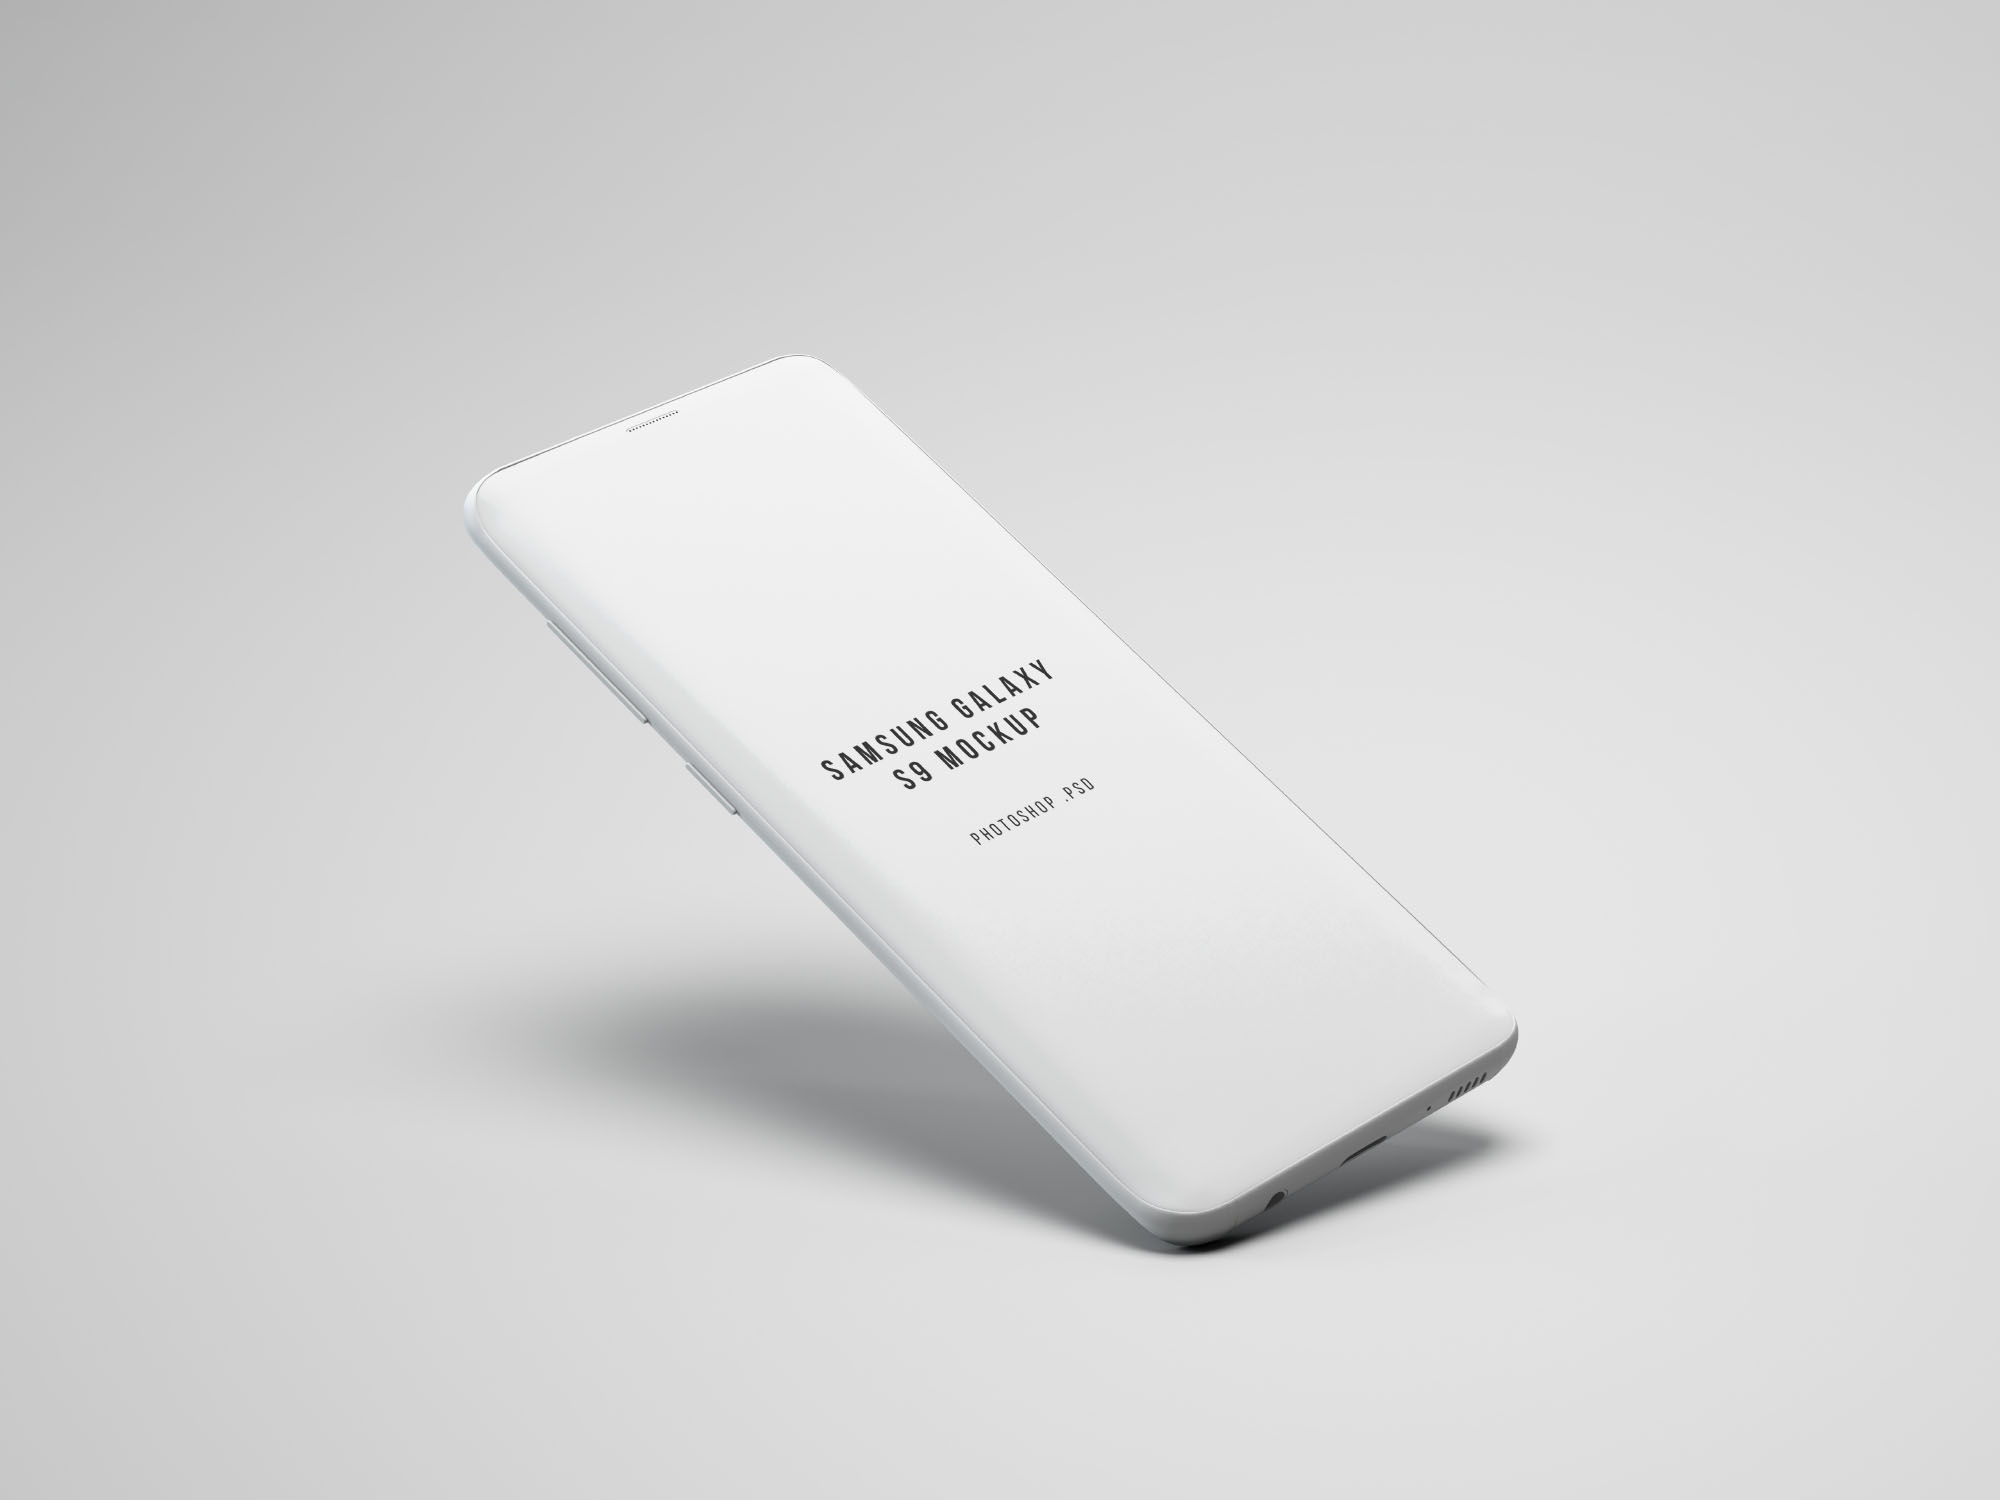 ng Galaxy S9 Mockup - White